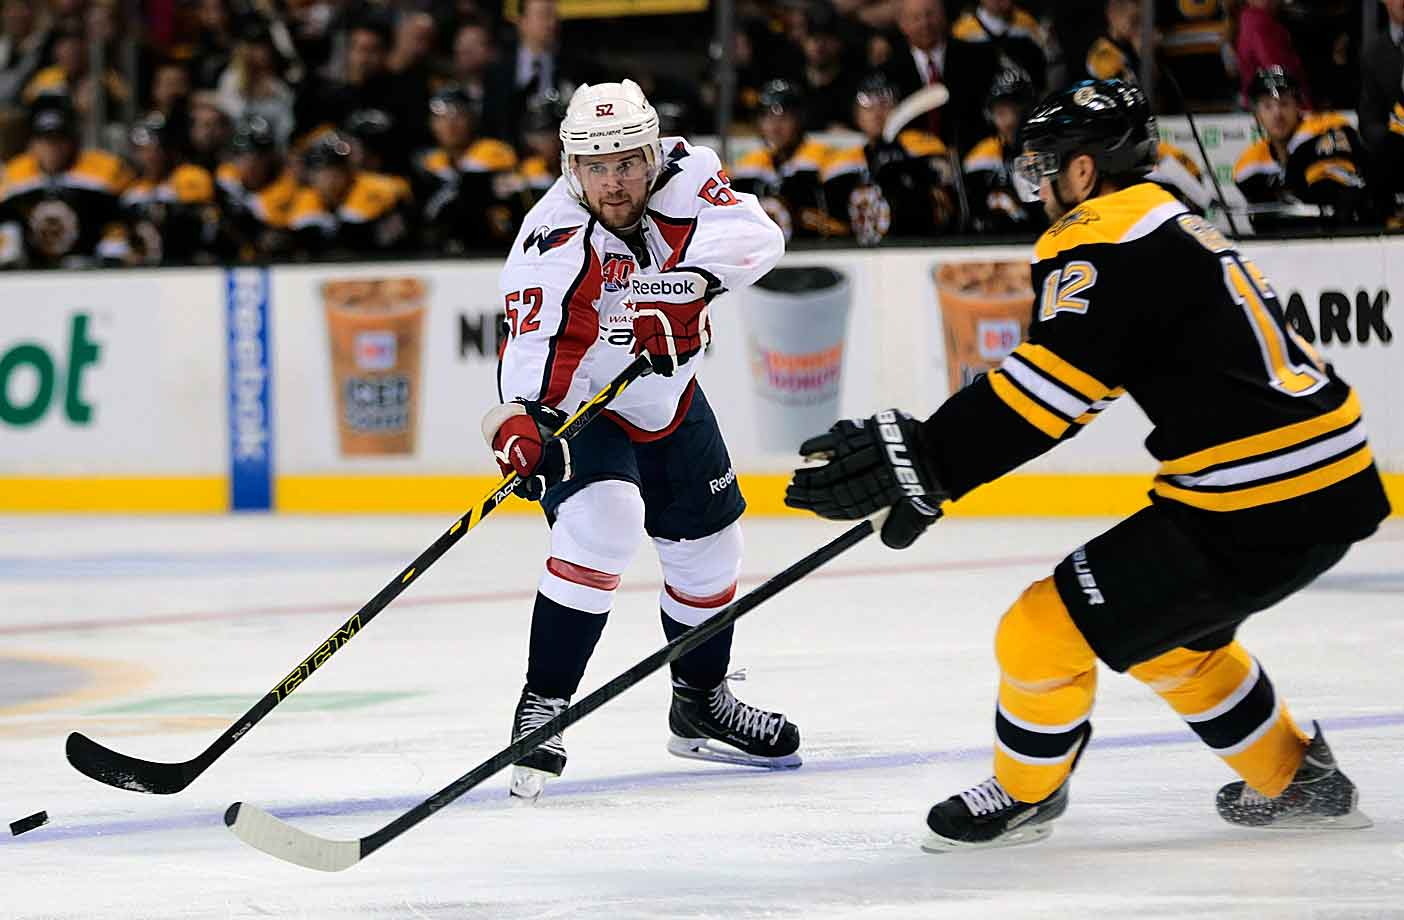 The Capitals defenseman, a Norris Trophy finalist as late as 2010, has been expected to bounce back every year since '11. But a litany of injuries, not to mention the revolving door of coaches and schemes in Washington, has derailed the 28-year-old blueliner's progress. The arrival of new coach Barry Trotz could be good news for Green. Trotz has had plenty of experience guiding some of the league's top defensemen. He could bring Green back to the top of his game.